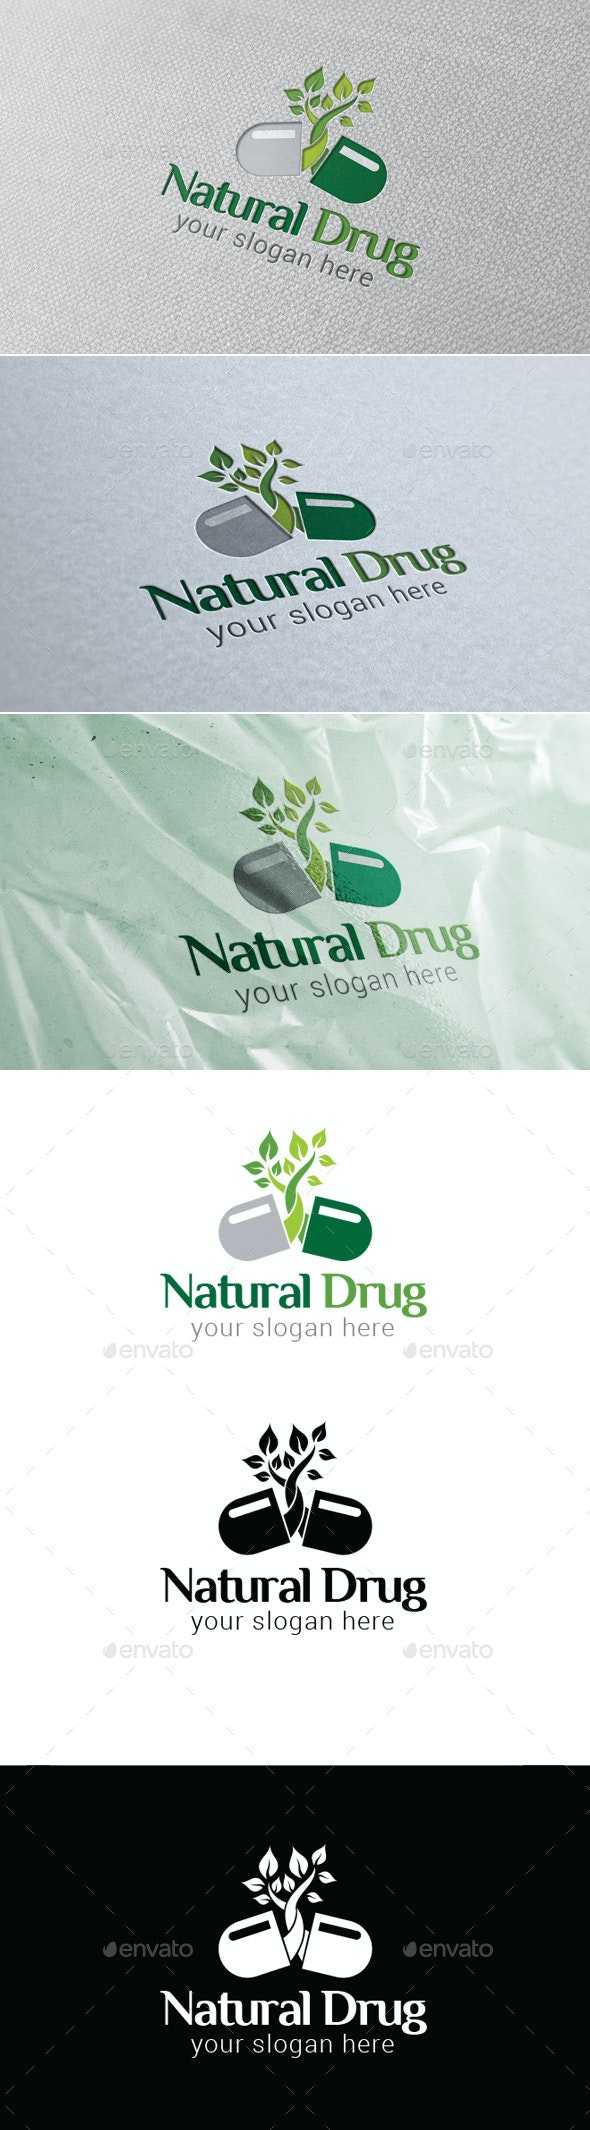 Natural Drug Logo Template - Nature Logo Templates